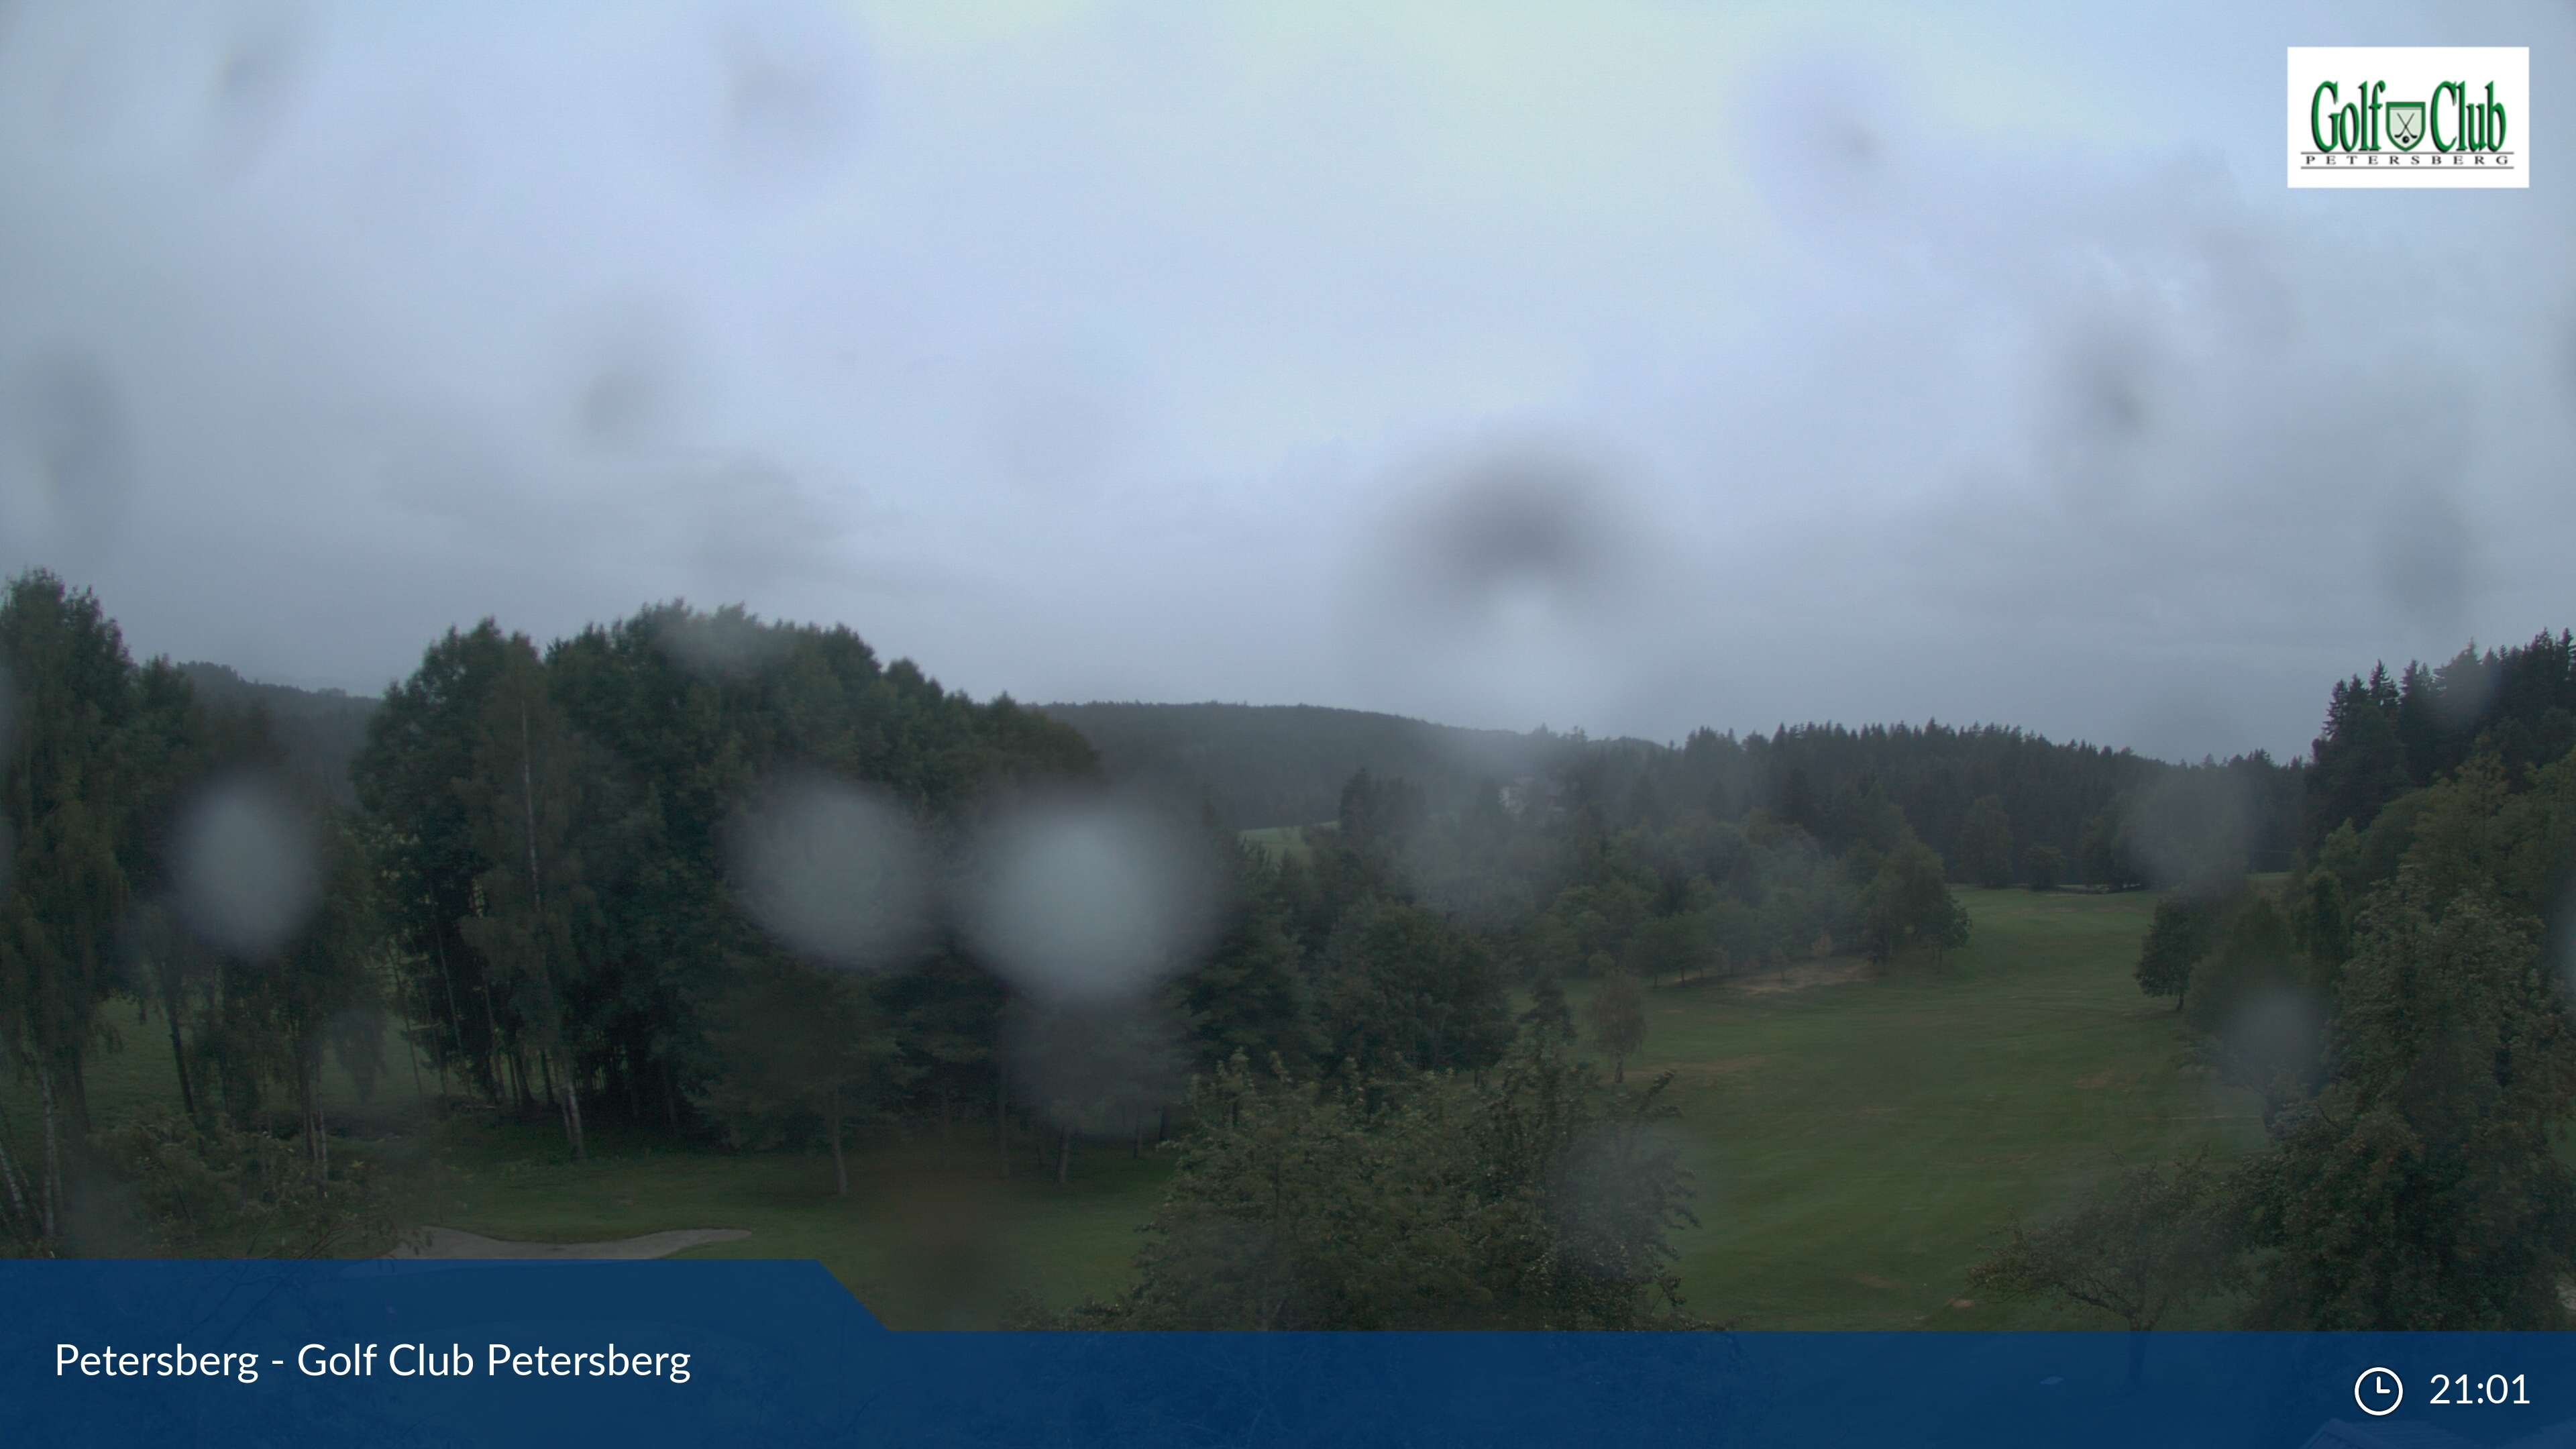 Webcam Webcam Petersberg